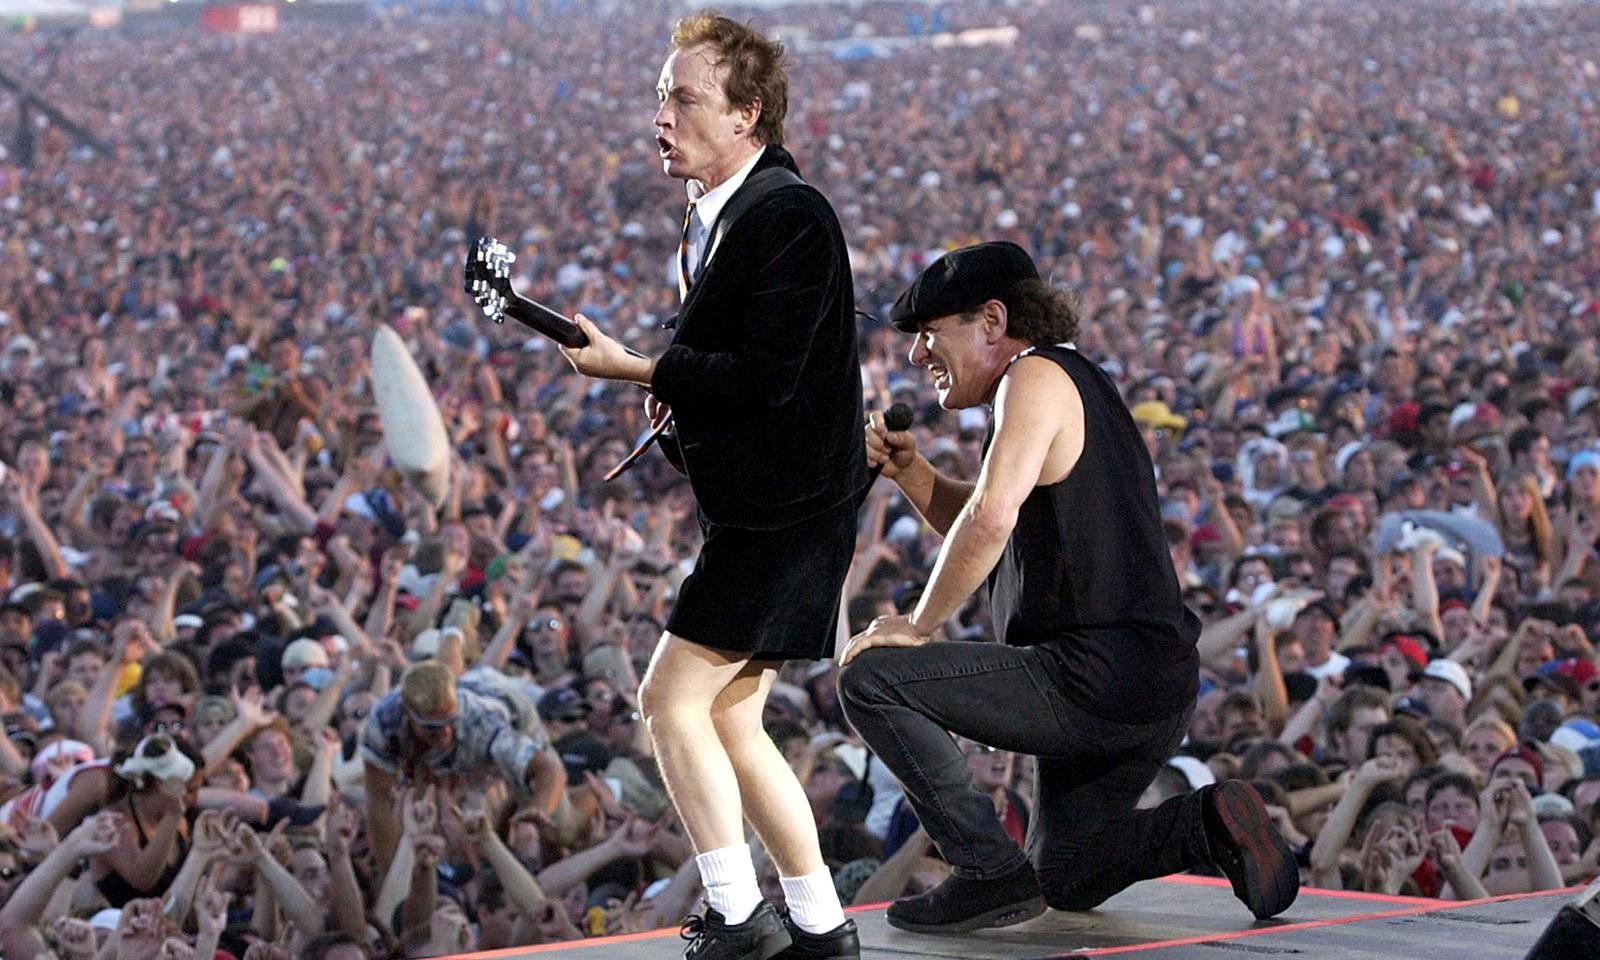 AC/DC lead vocalist Brian Johnson (L) and Angus Young perform at the O2 Millennium Dome stadium in London April 14, 2009